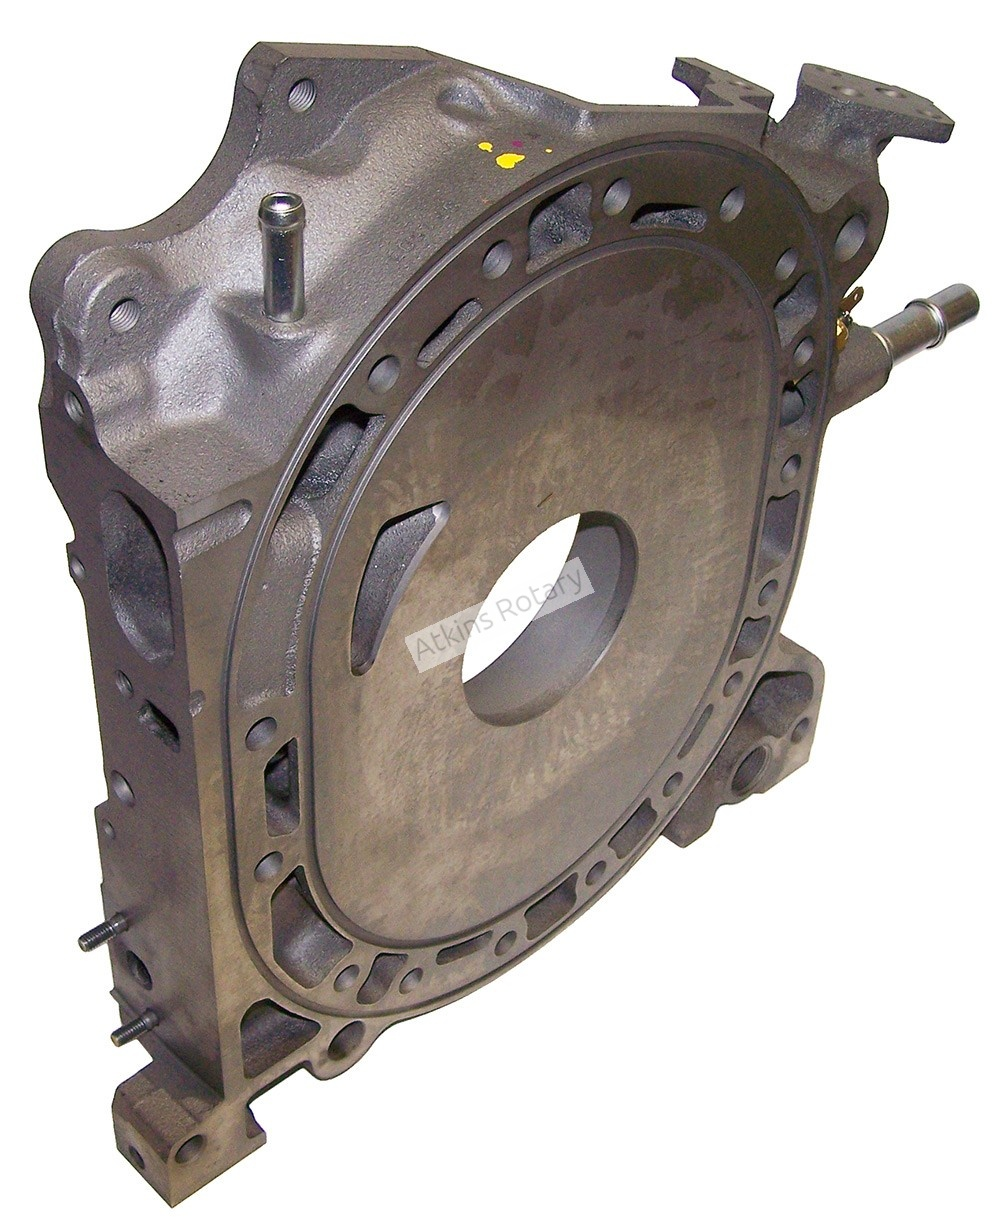 93-95 Rx7 Manual Rear Side Housing (N3YC-10-C50)